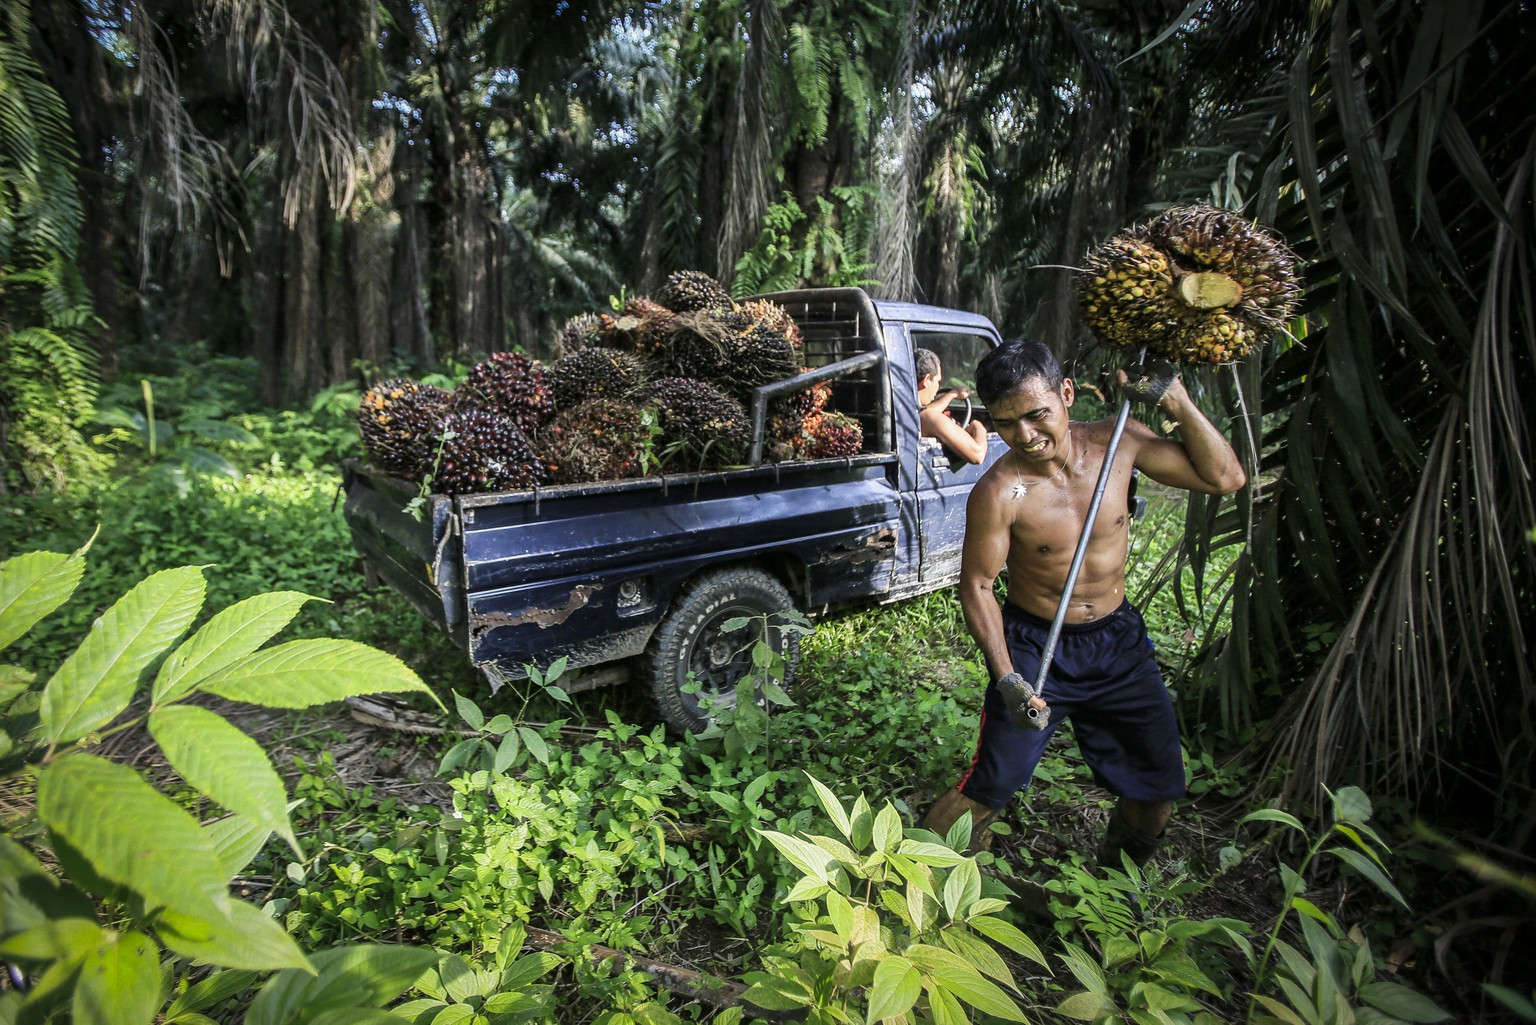 ARCHIV – ZUM NEUEN WASCHMITTEL OHNE PALMOEL DER FIRMA GOOD SOAPS AM DIENSTAG, 19. JUNI 2018, STELLEN WIR IHNEN FOLGENDES BILDMATERIAL ZUR VERFUEGUNG -- (08/42) An Indonesian worker harvests palm fruits at a palm oil plantation in Deli Serdang, North Sumatra, Indonesia, 16 September 2016. Indonesia is the world's largest producer of Palm Oil, made from the palm fruit, followed closely by Malaysia. Palm plantations built on destroyed tropical rainforest, have seen the death and displacements of many species, among them the endangered orangutan. Palm oil is an ingredient in many products across supermarket shelves. Consumer groups are pressing end users to buy only products containing substitutes or sustainably sourced palm oil, warning species and pristine habitats are on the brink of being lost forever to humankind.  EPA/DEDI SINUHAJI